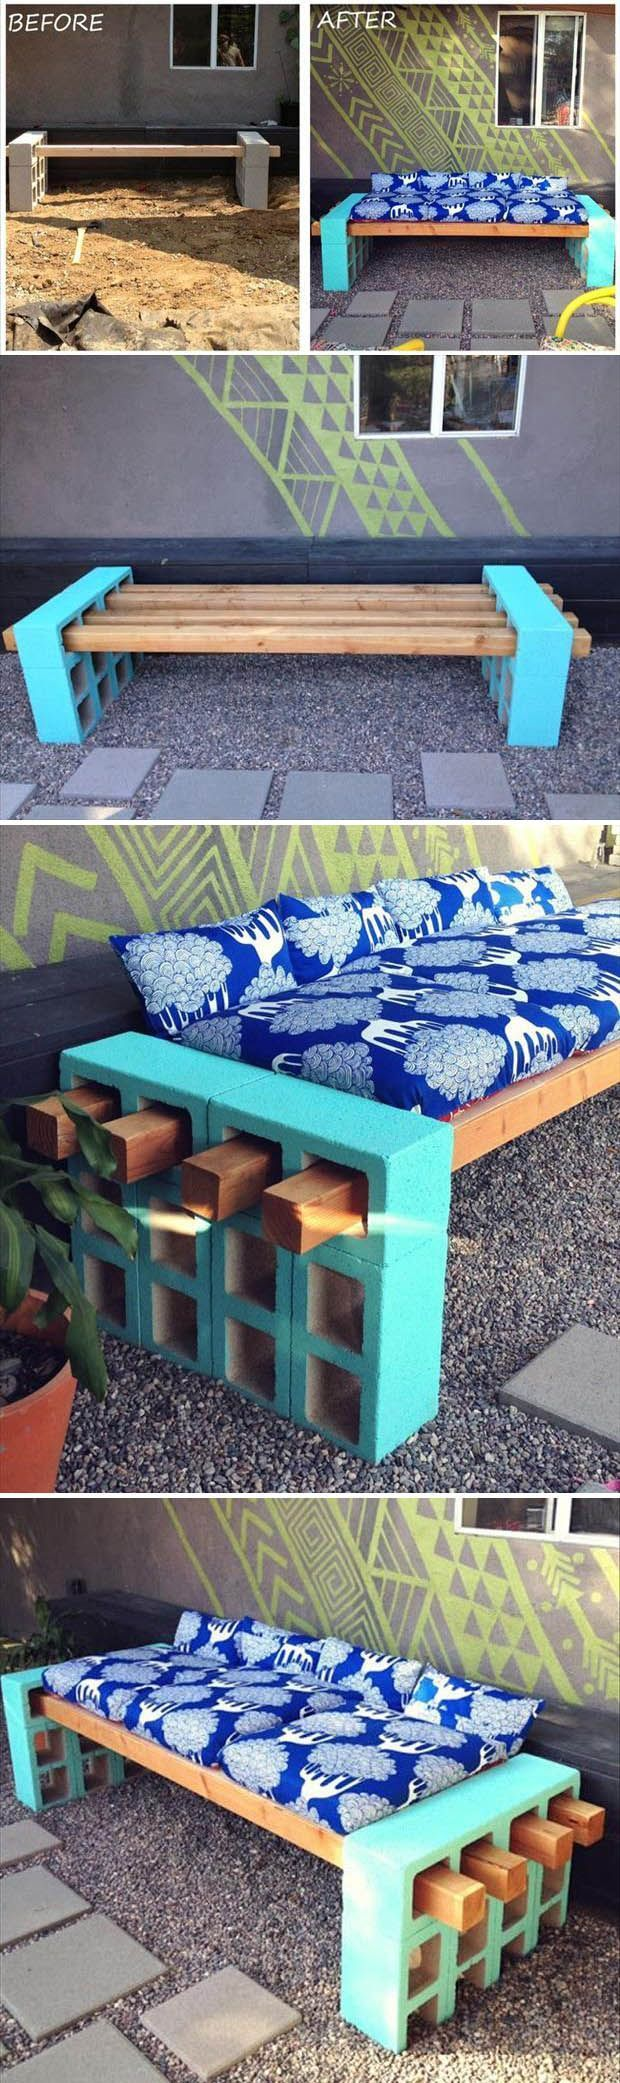 DIY Wood Cinder Block Bench Pictures, Photos, and Images for Facebook, Tumblr, Pinterest, and Twitter